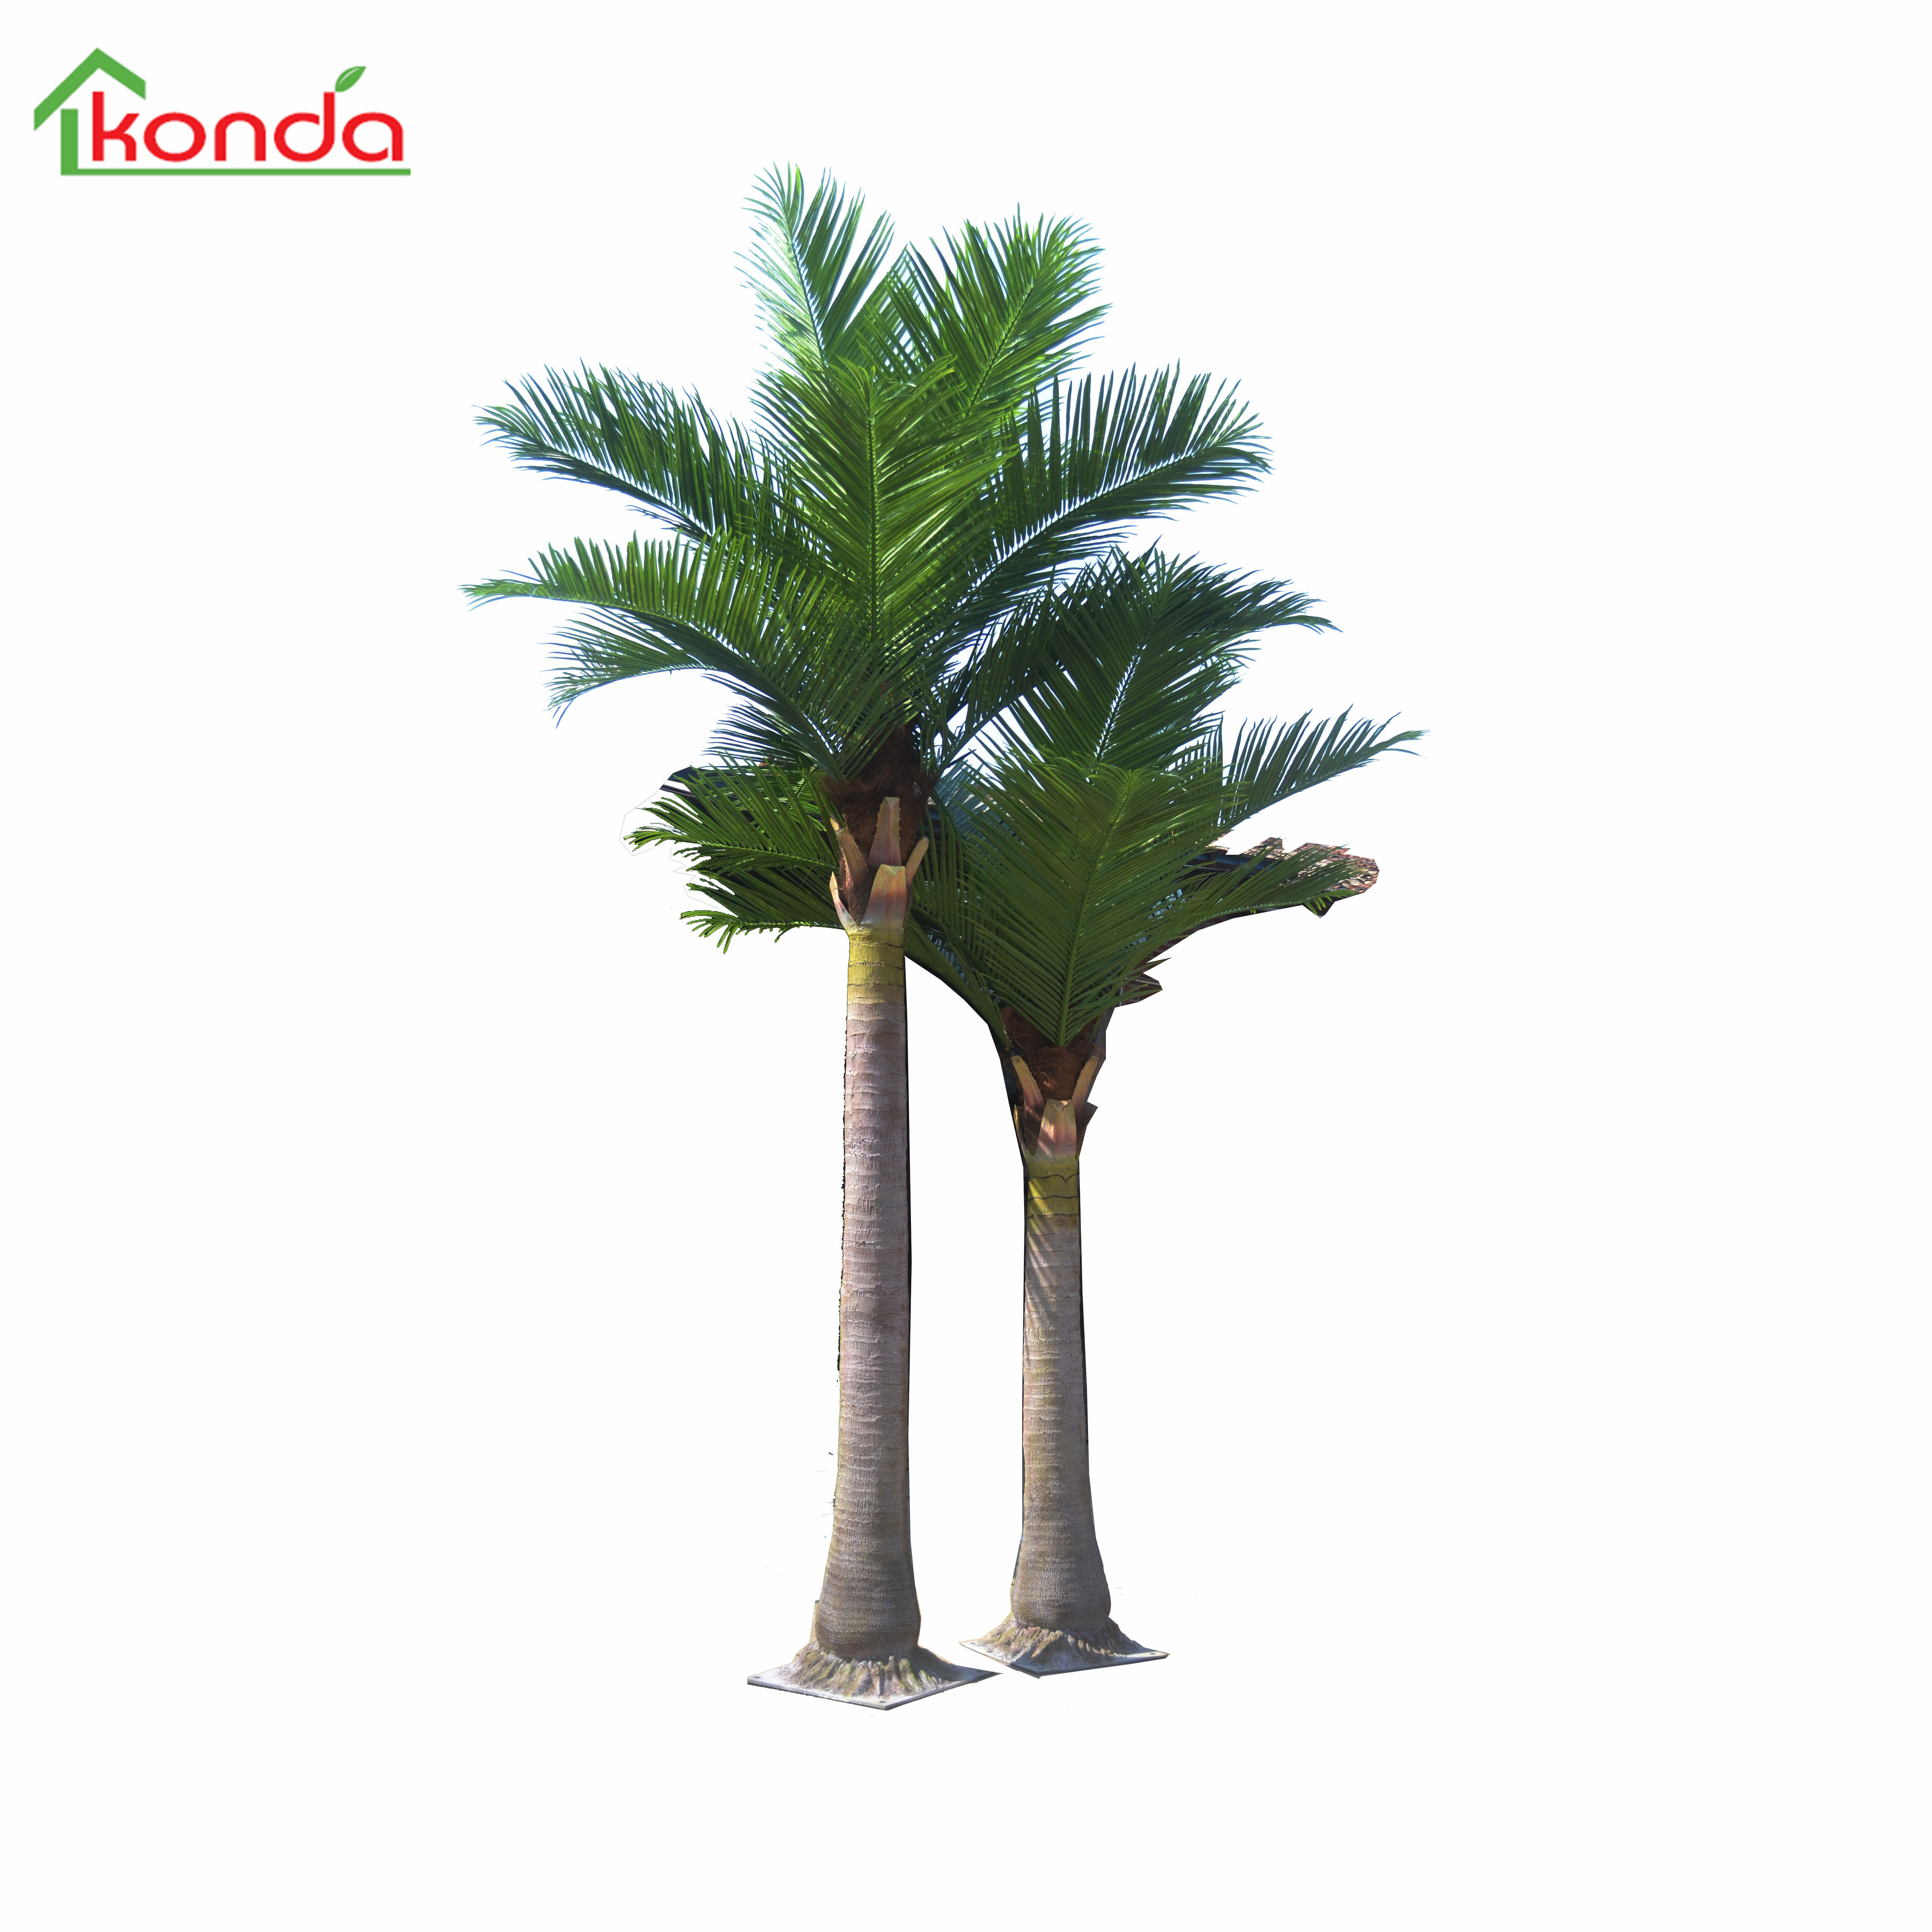 Hot sale fake palm tree 5m/6m faux tree for outdoor decorative tree in China